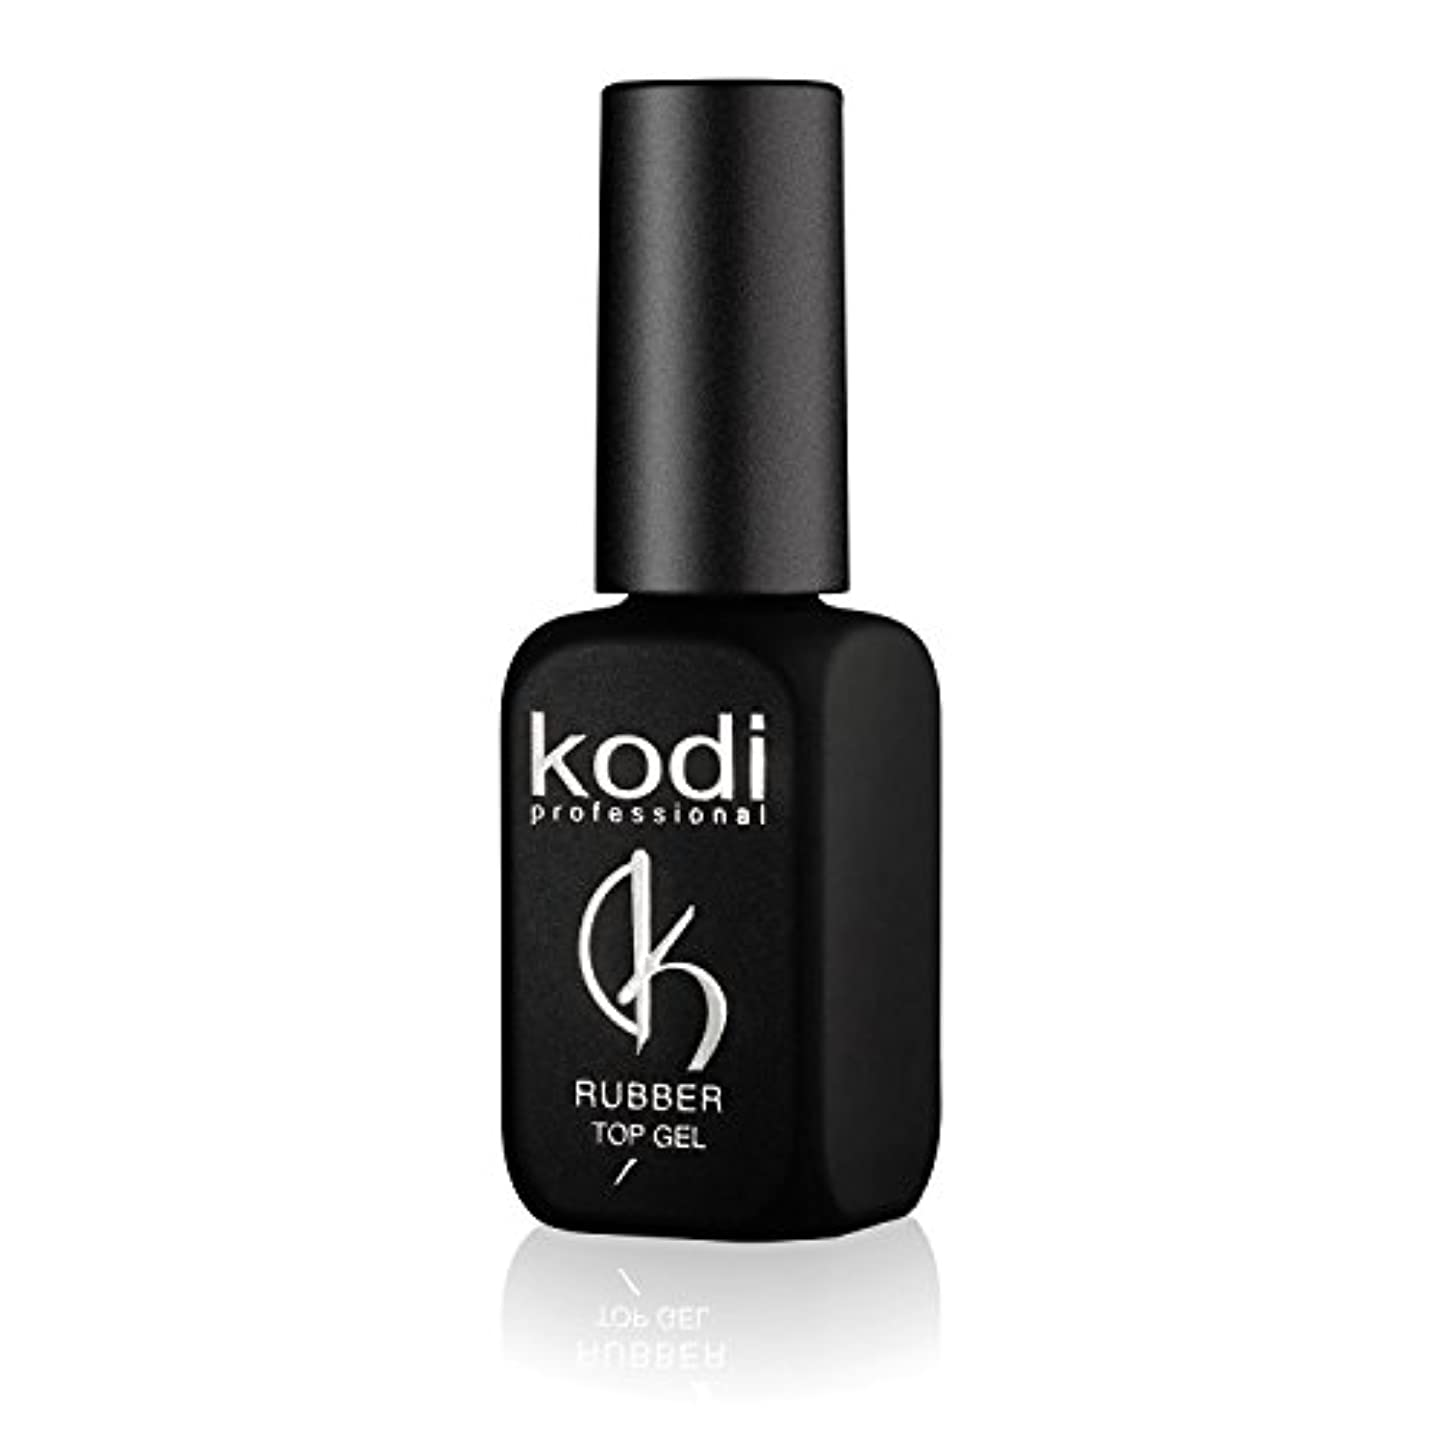 スーパーマーケット雑草シードProfessional Rubber Top Gel By Kodi | 12ml 0.42 oz | Soak Off, Polish Fingernails Coat Gel | For Long Lasting...